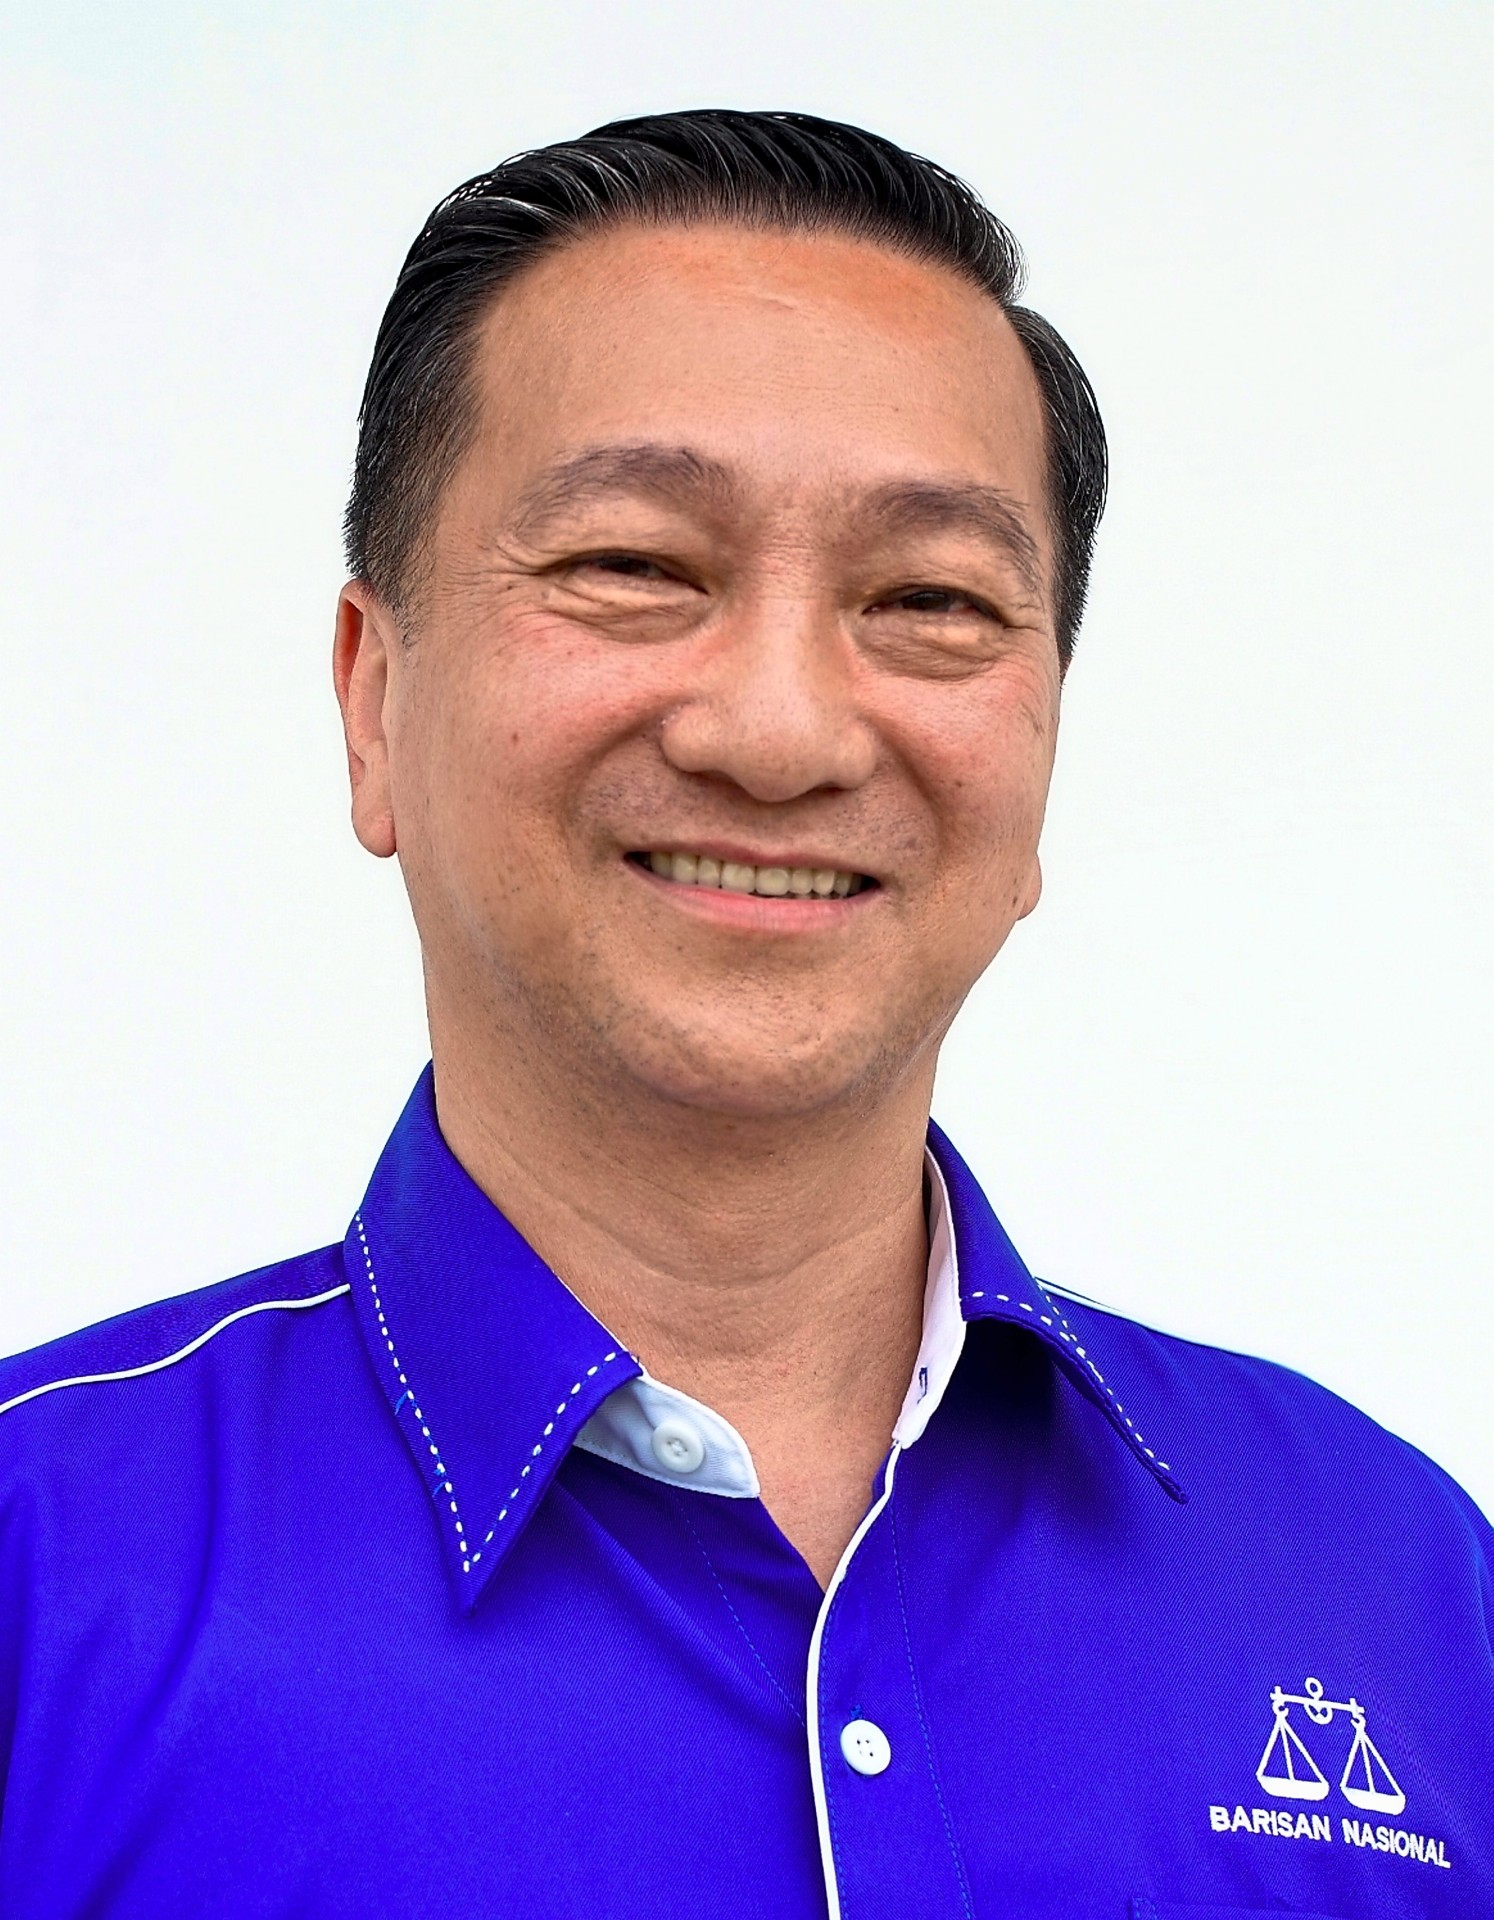 Wee: Is candidate representing Barisan.